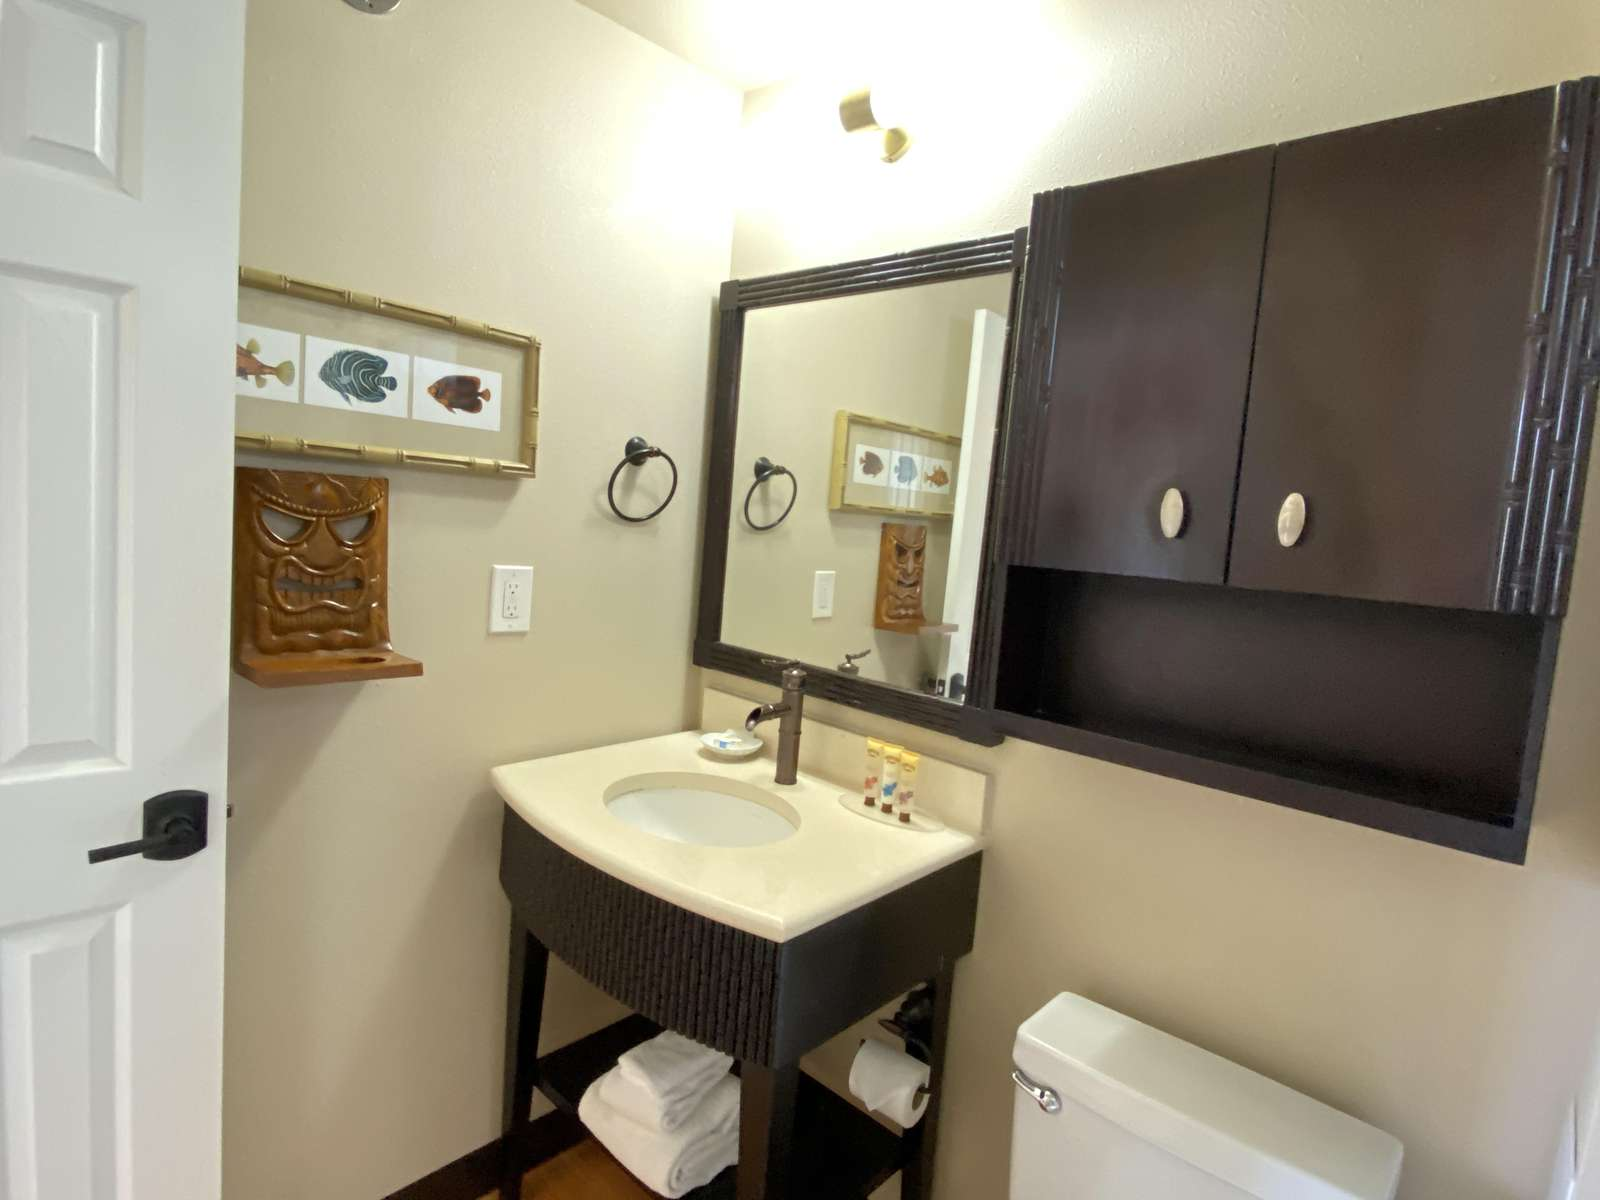 Well stocked bathroom with amenities & towels